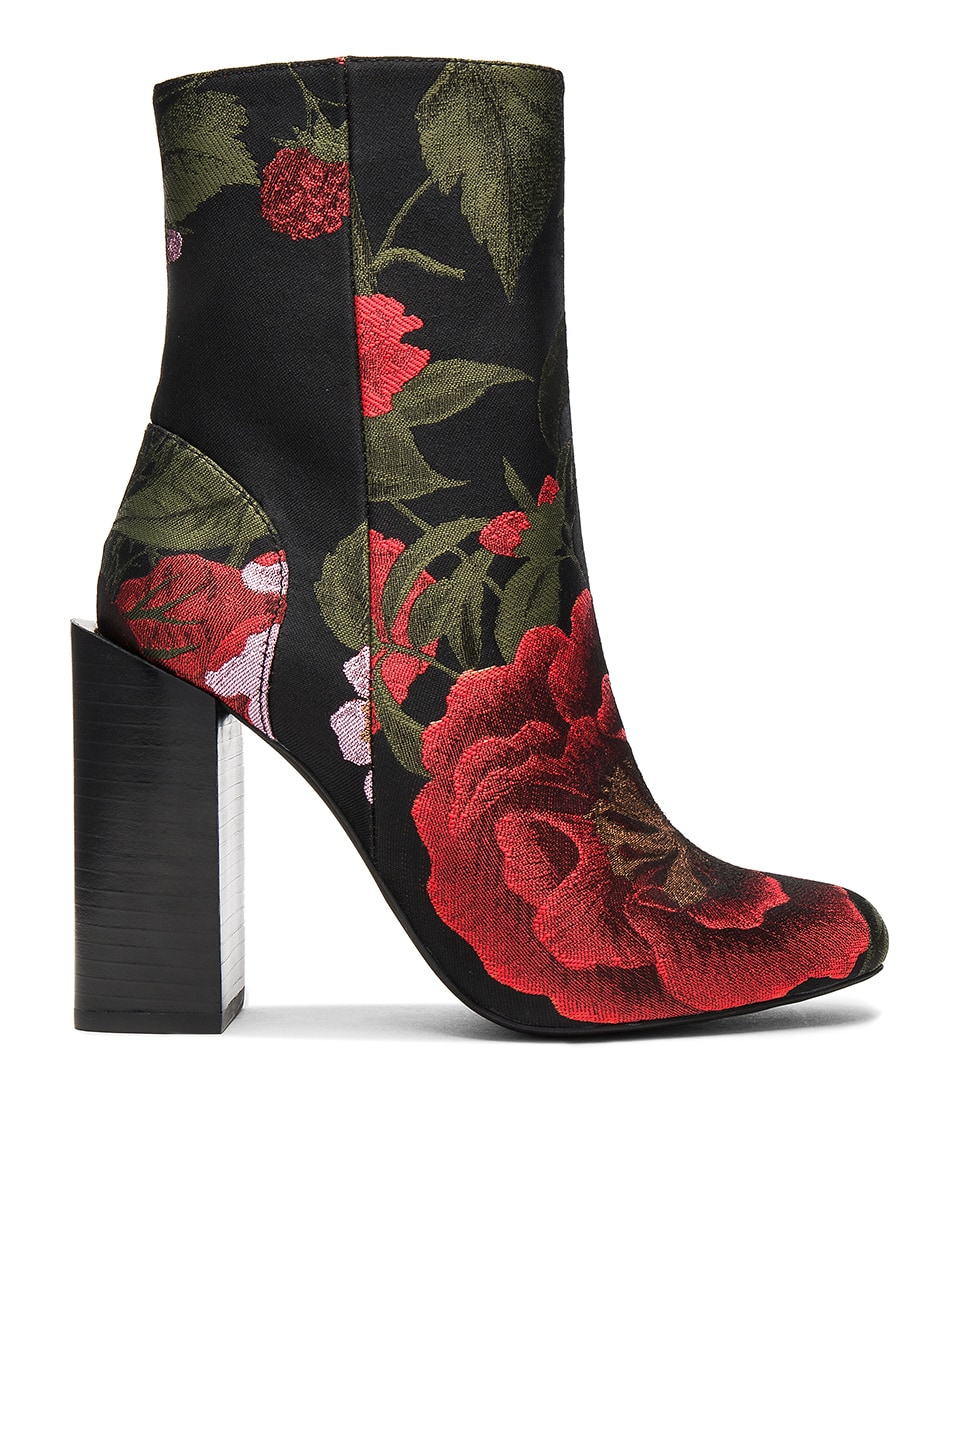 Jeffrey Campbell Stratford Booties in Black Red Floral Brocade